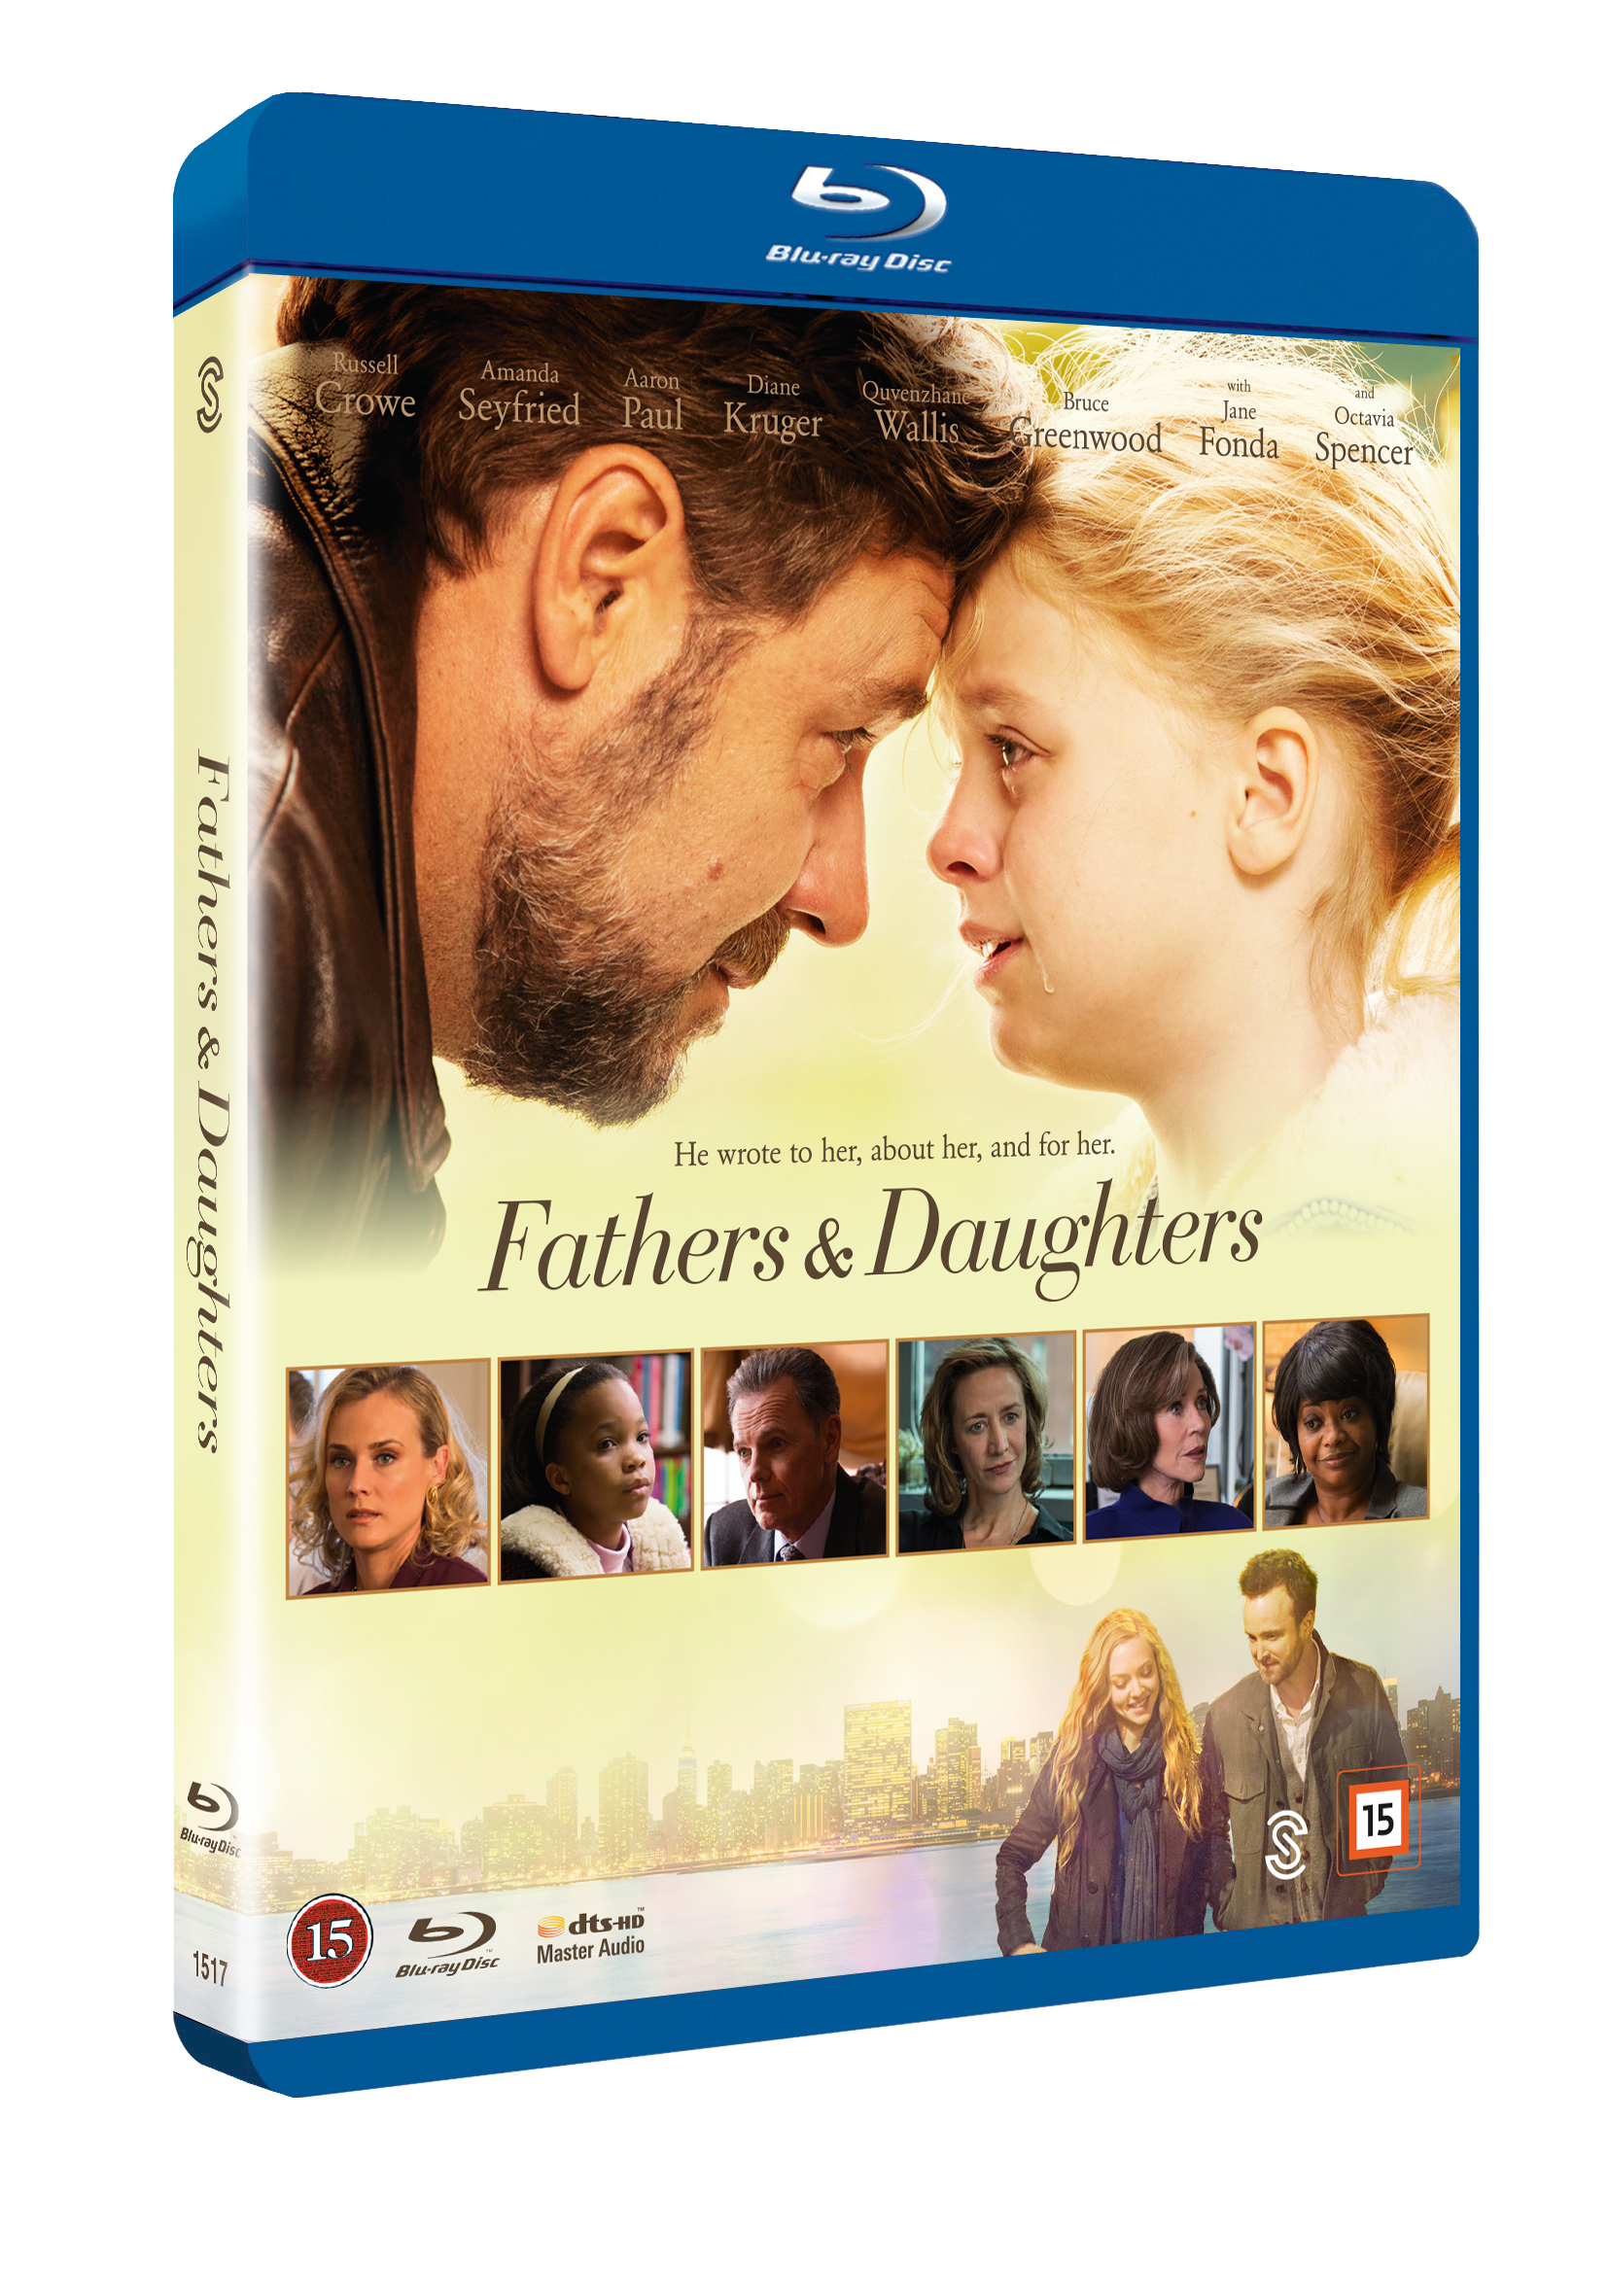 Fathers & Daughters - Blu Ray